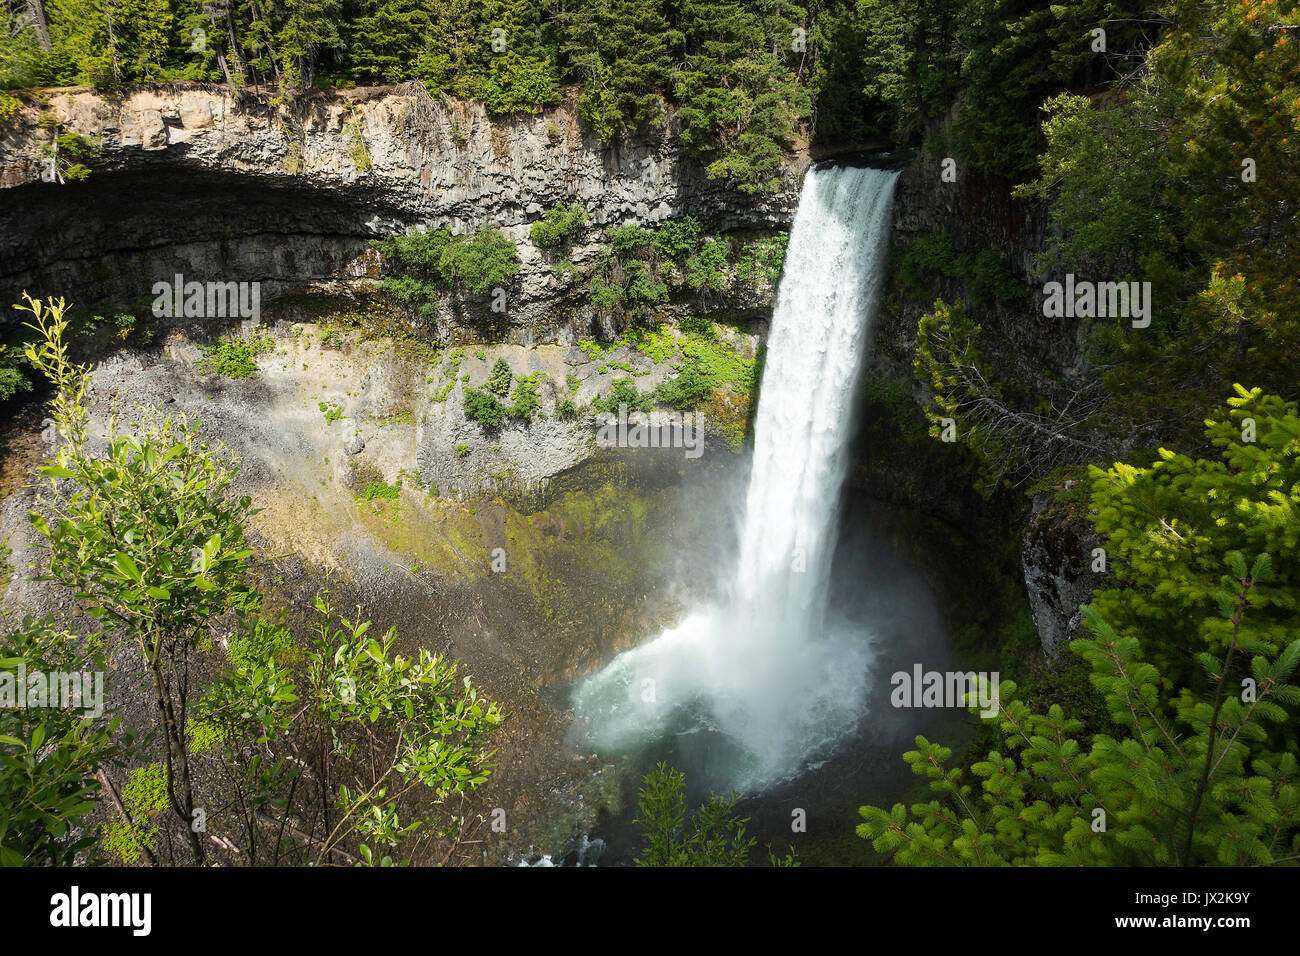 The Spectacular Brandywine Falls in Brandywine Provincial Park near Whistler British Columbia Canada - Stock Image